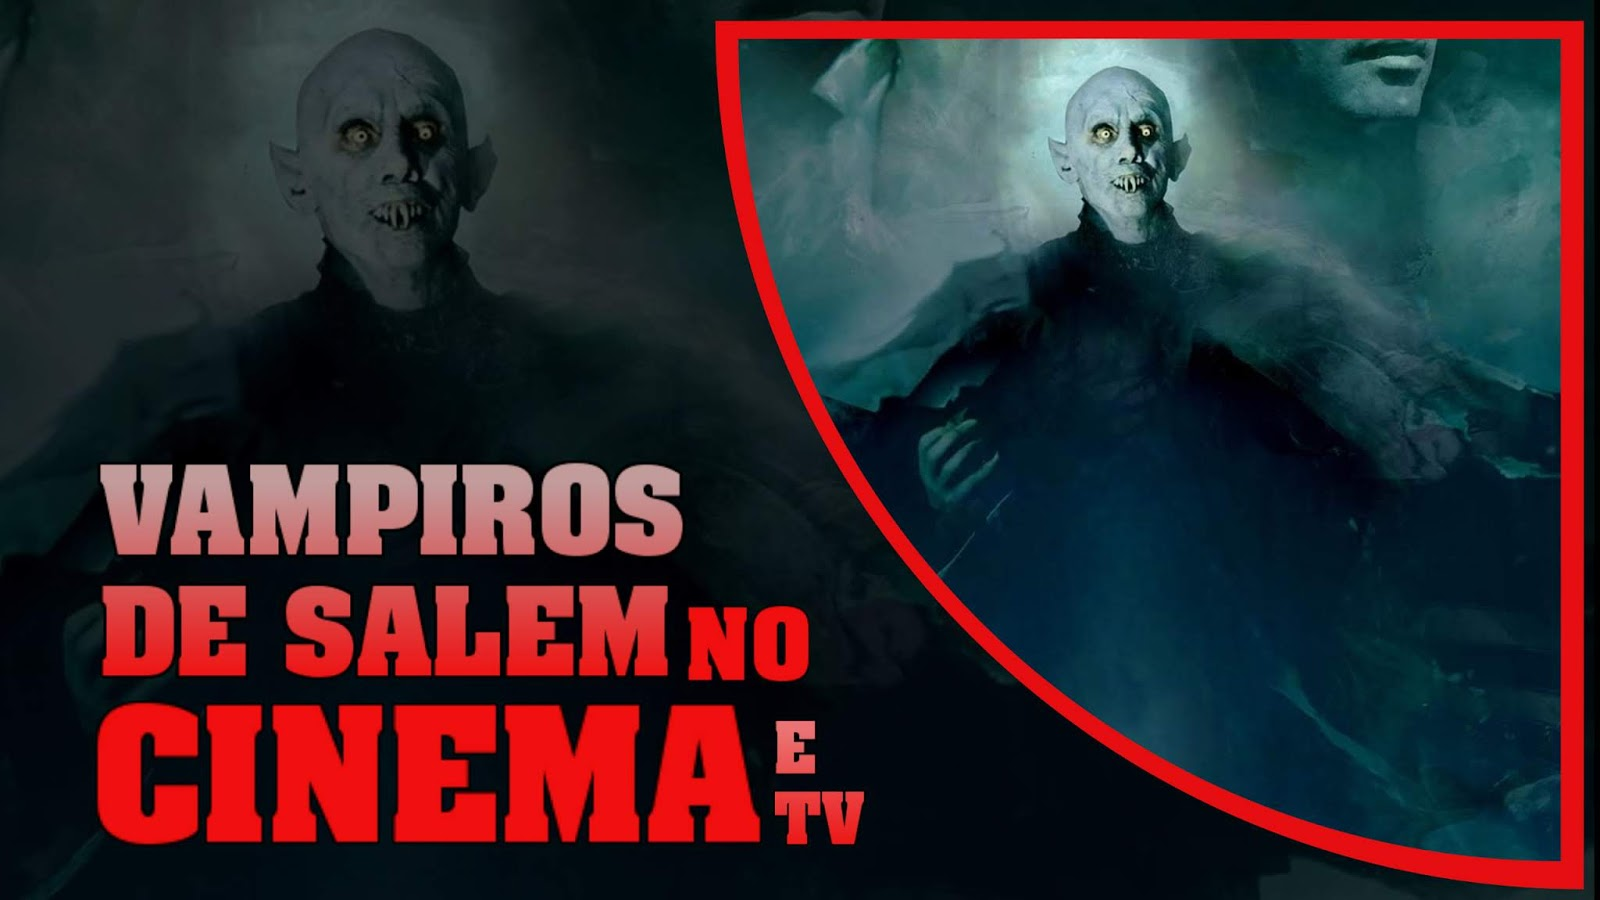 vampiros-de-salem-no-cinema-tv